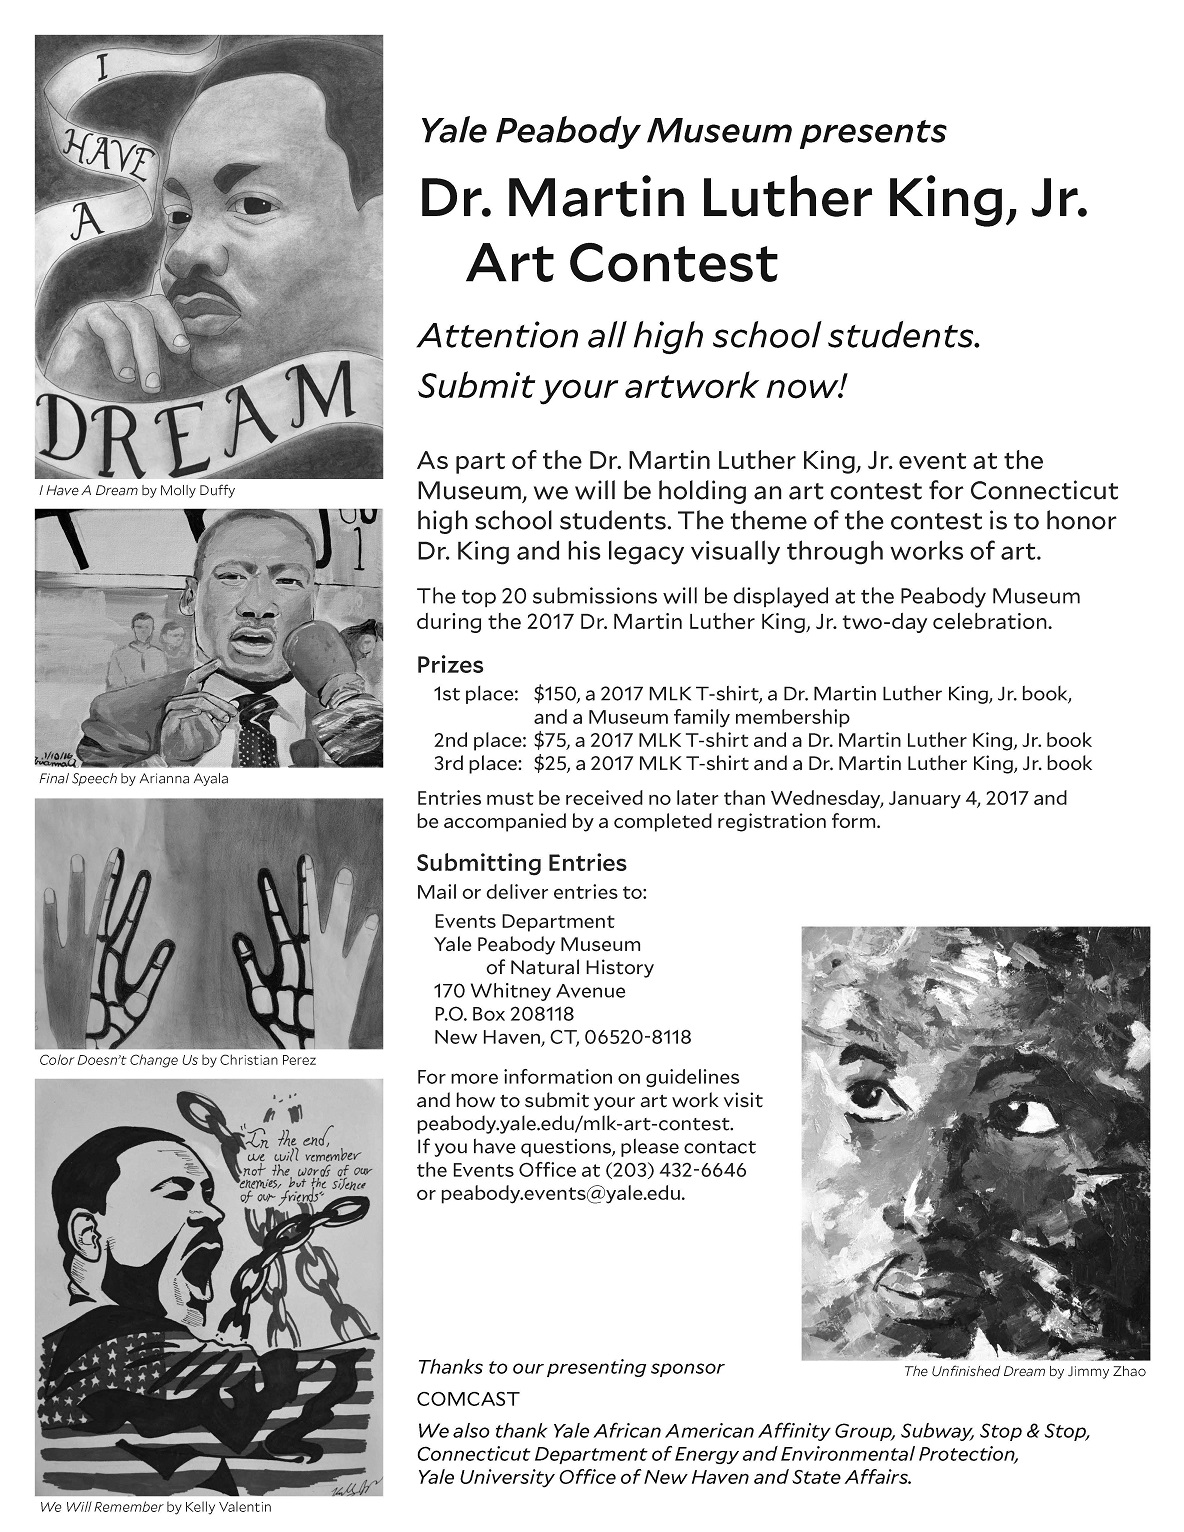 mlk-art-contest-poster-002